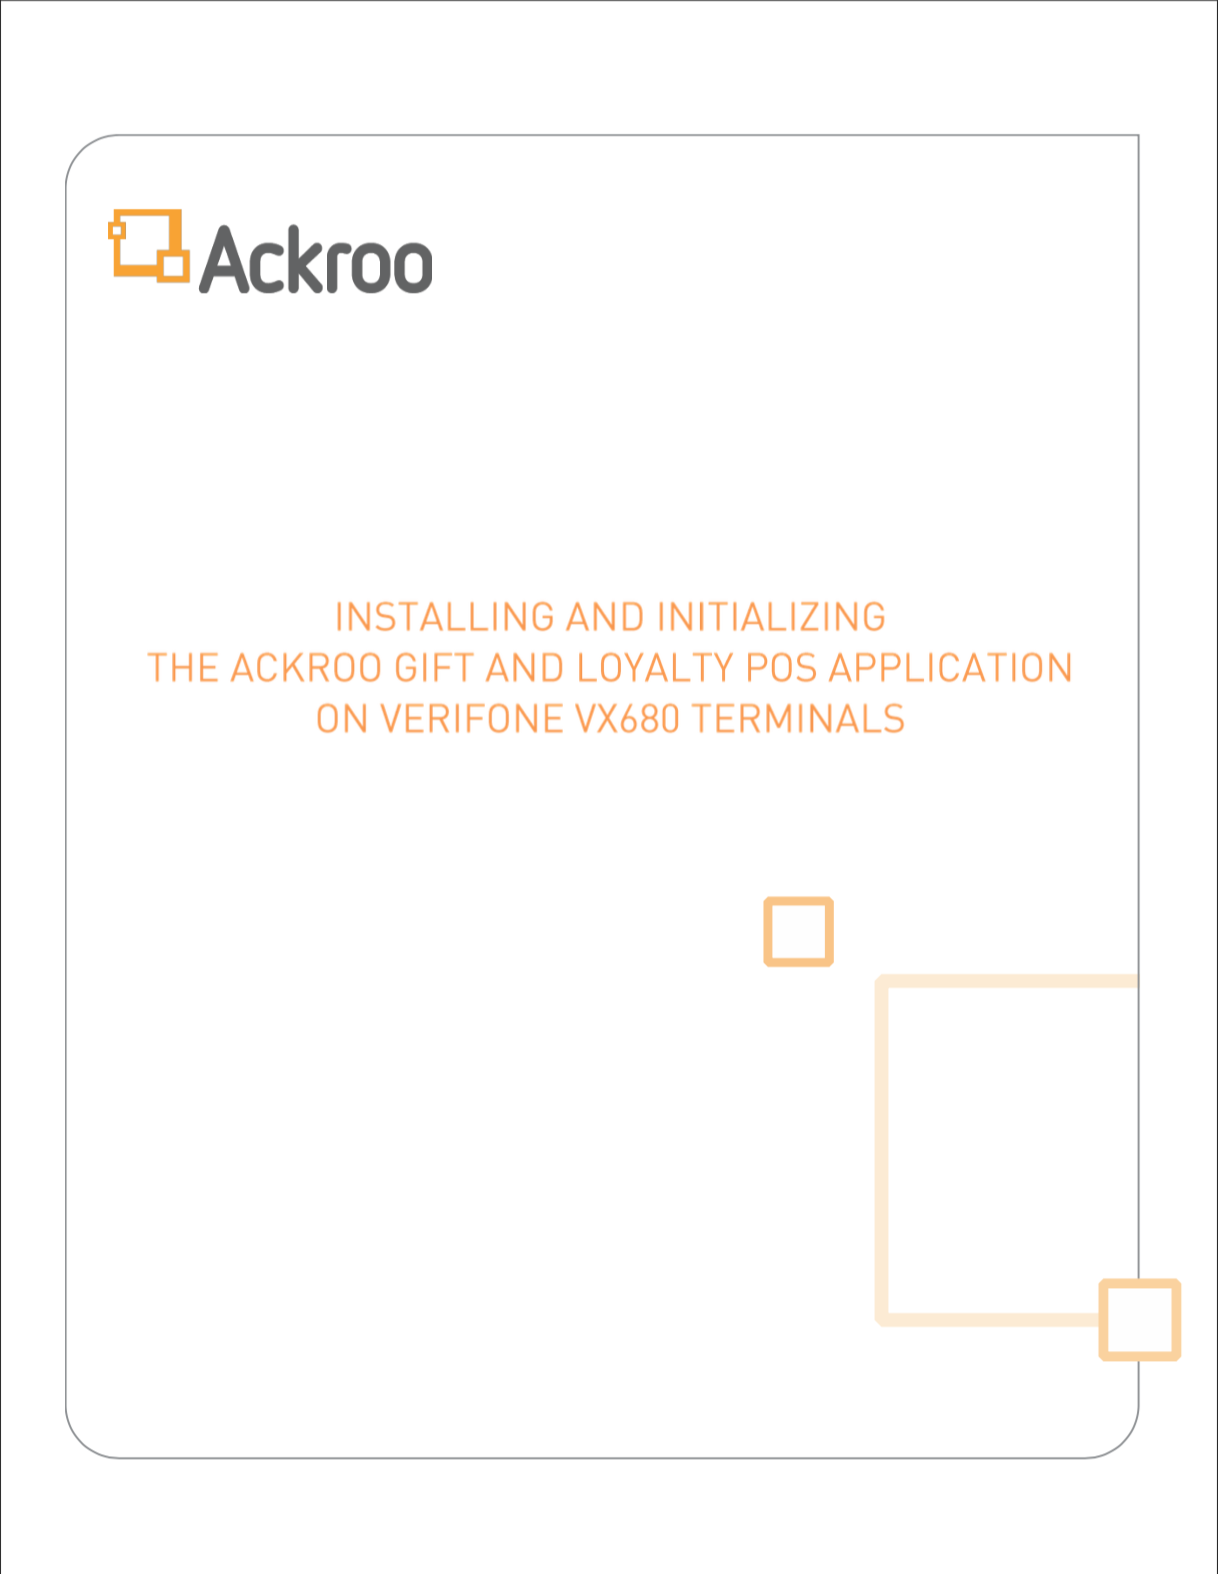 Verifone_Evolution_Vx680_Ackapp_installation_guide_-_Page_1.png